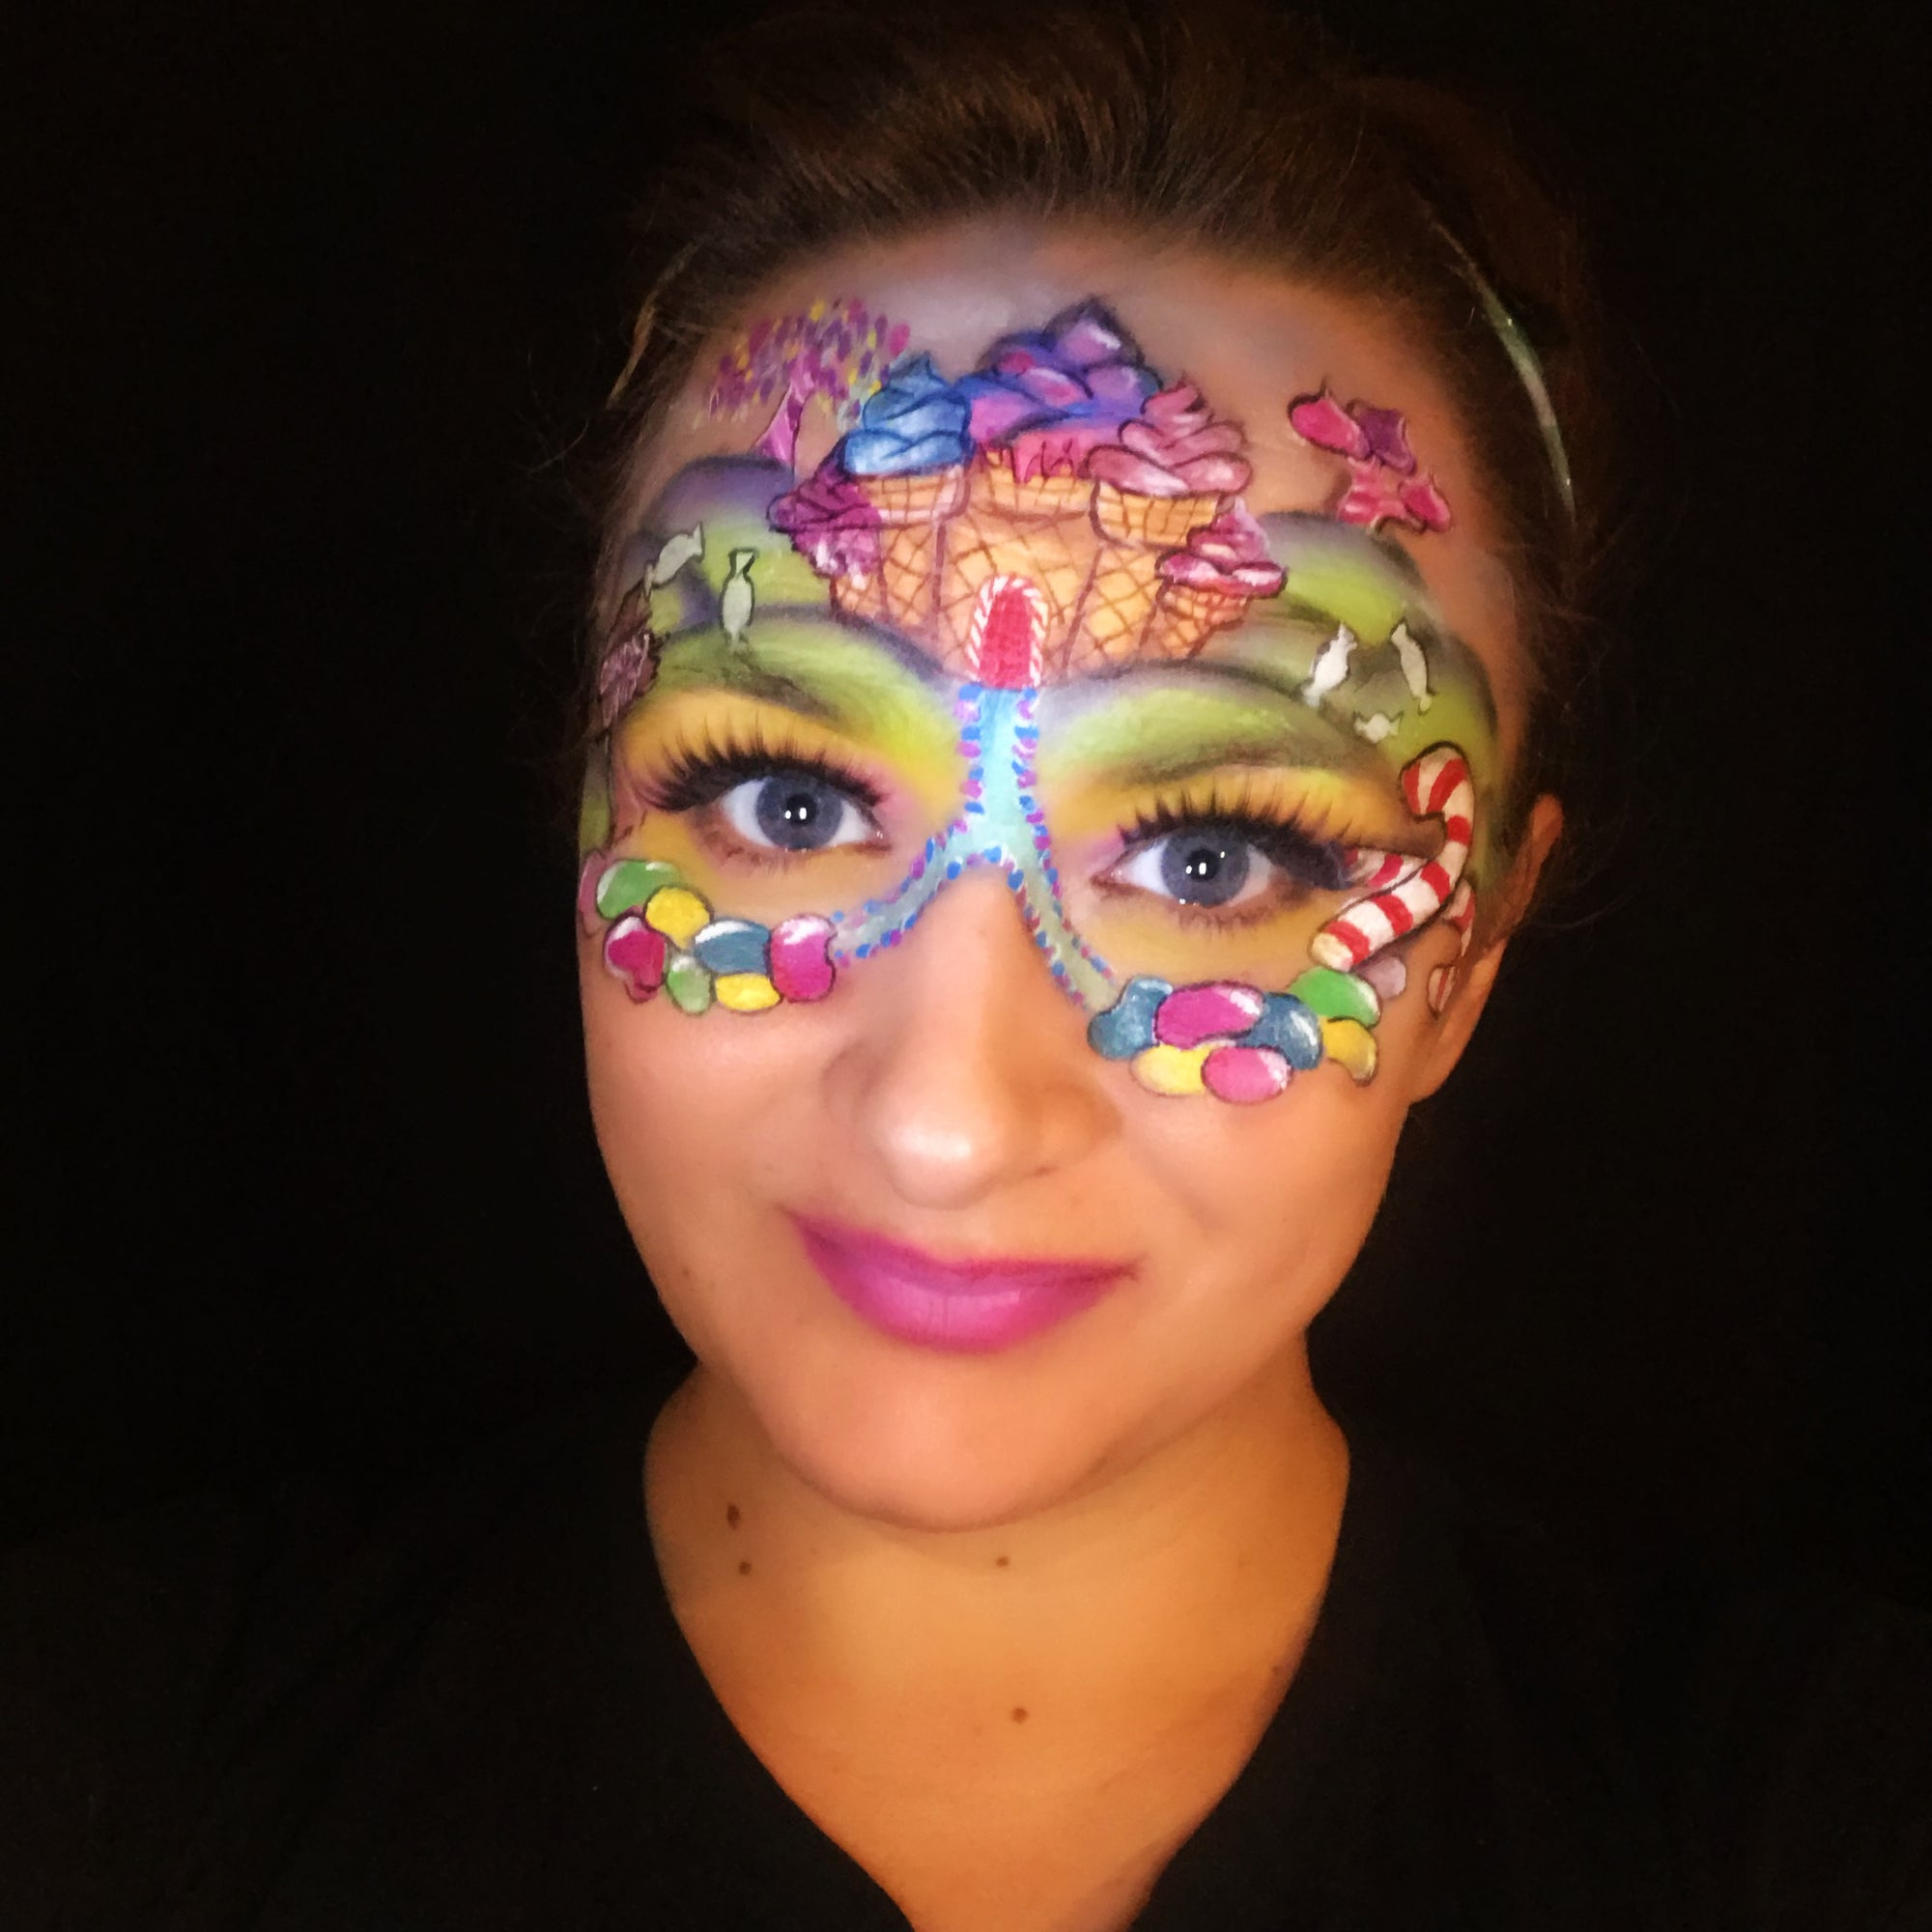 Candy Land Dream Face Paint Design by Marina